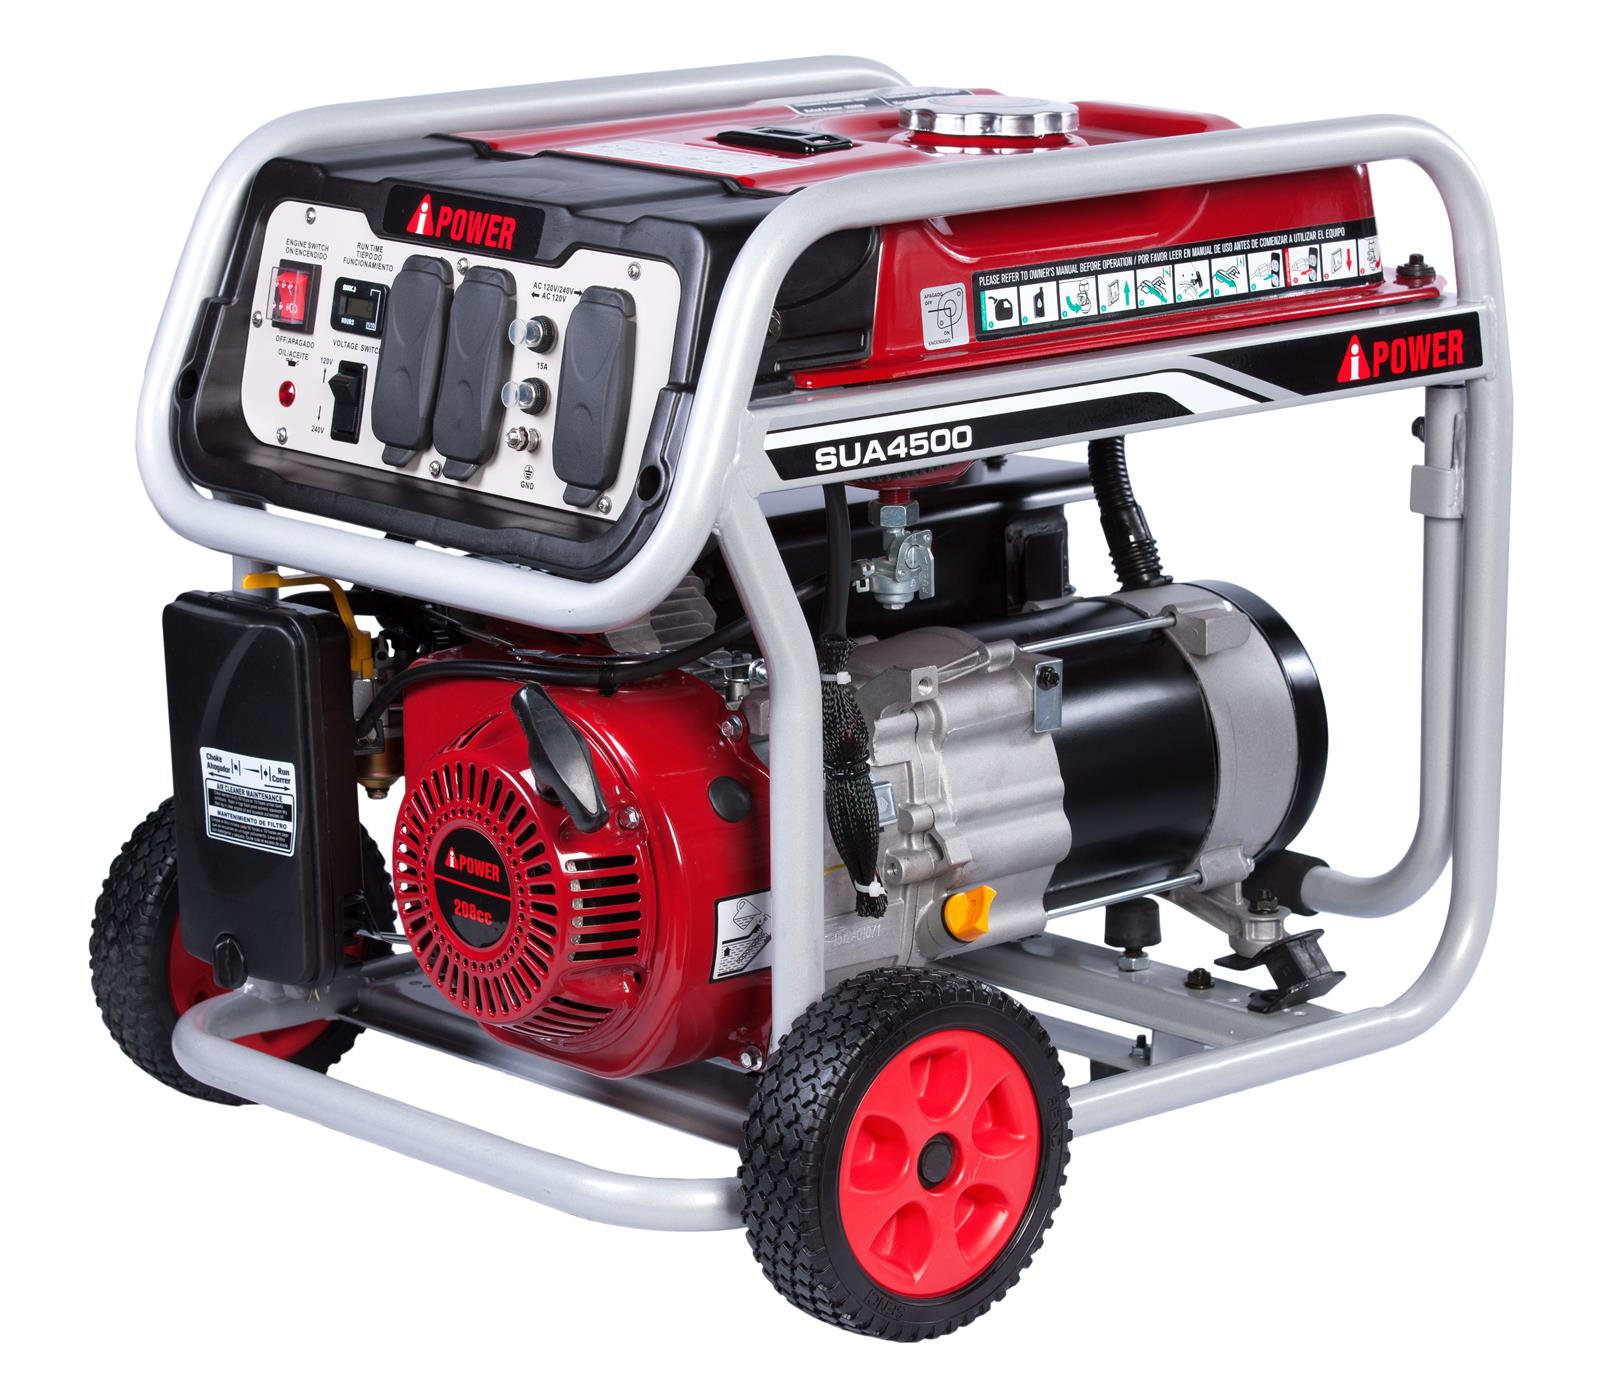 A iPower Portable Generators SUA4500 Free Shipping on Orders